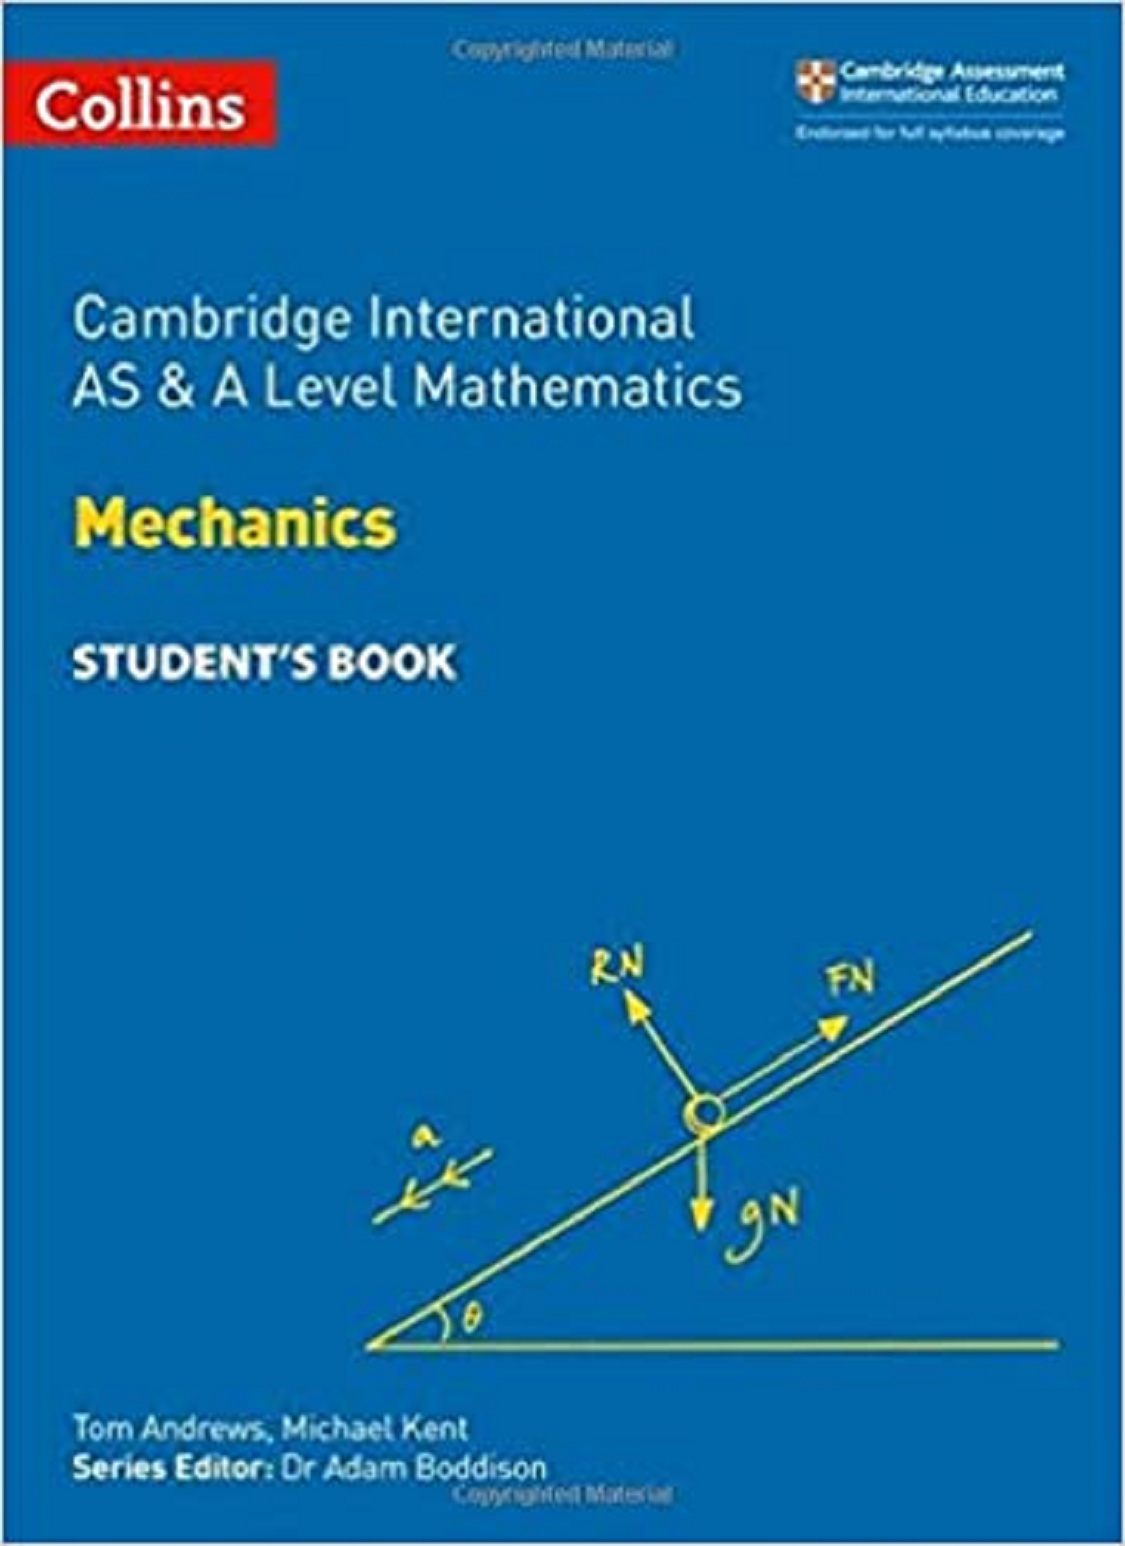 Collins Cambridge International AS & A Level Mathematics Mechanics Student's Book